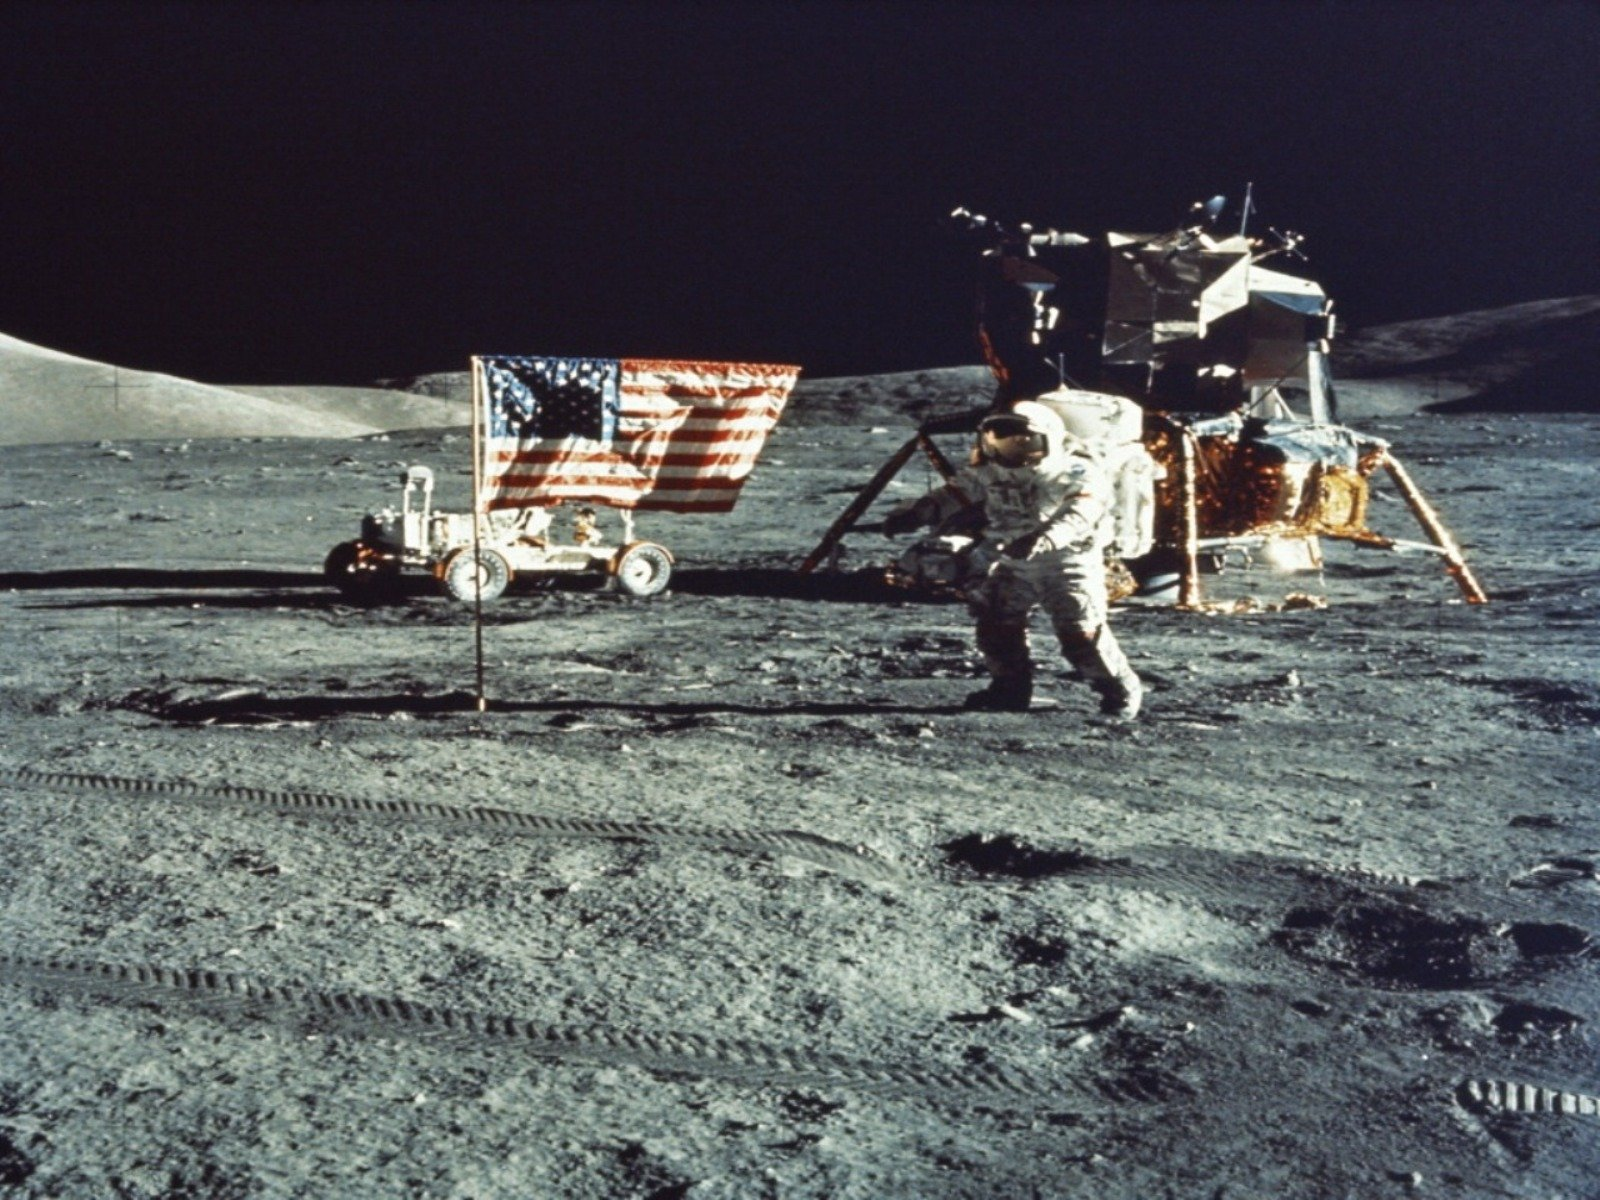 apollo missions wallpaper - photo #12